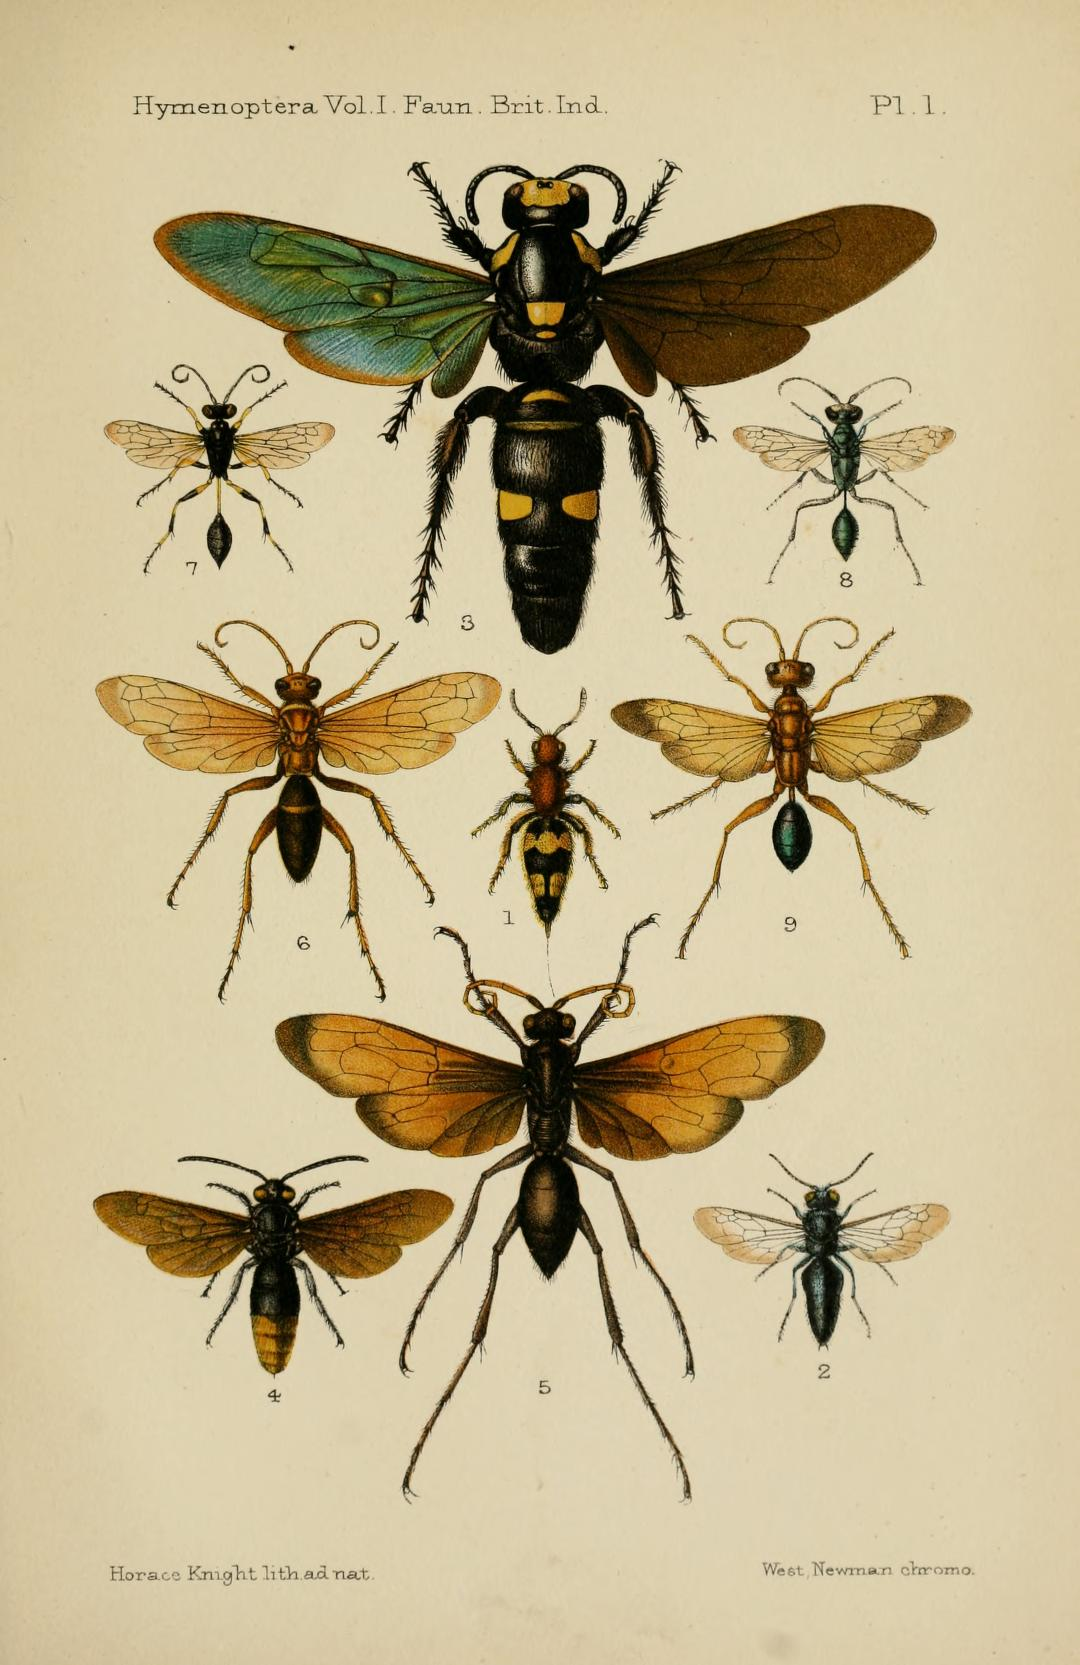 Illustration from C. T. Bingham, Hymenoptera, vol. 1: Wasps and Bees (Calcutta, 1897)